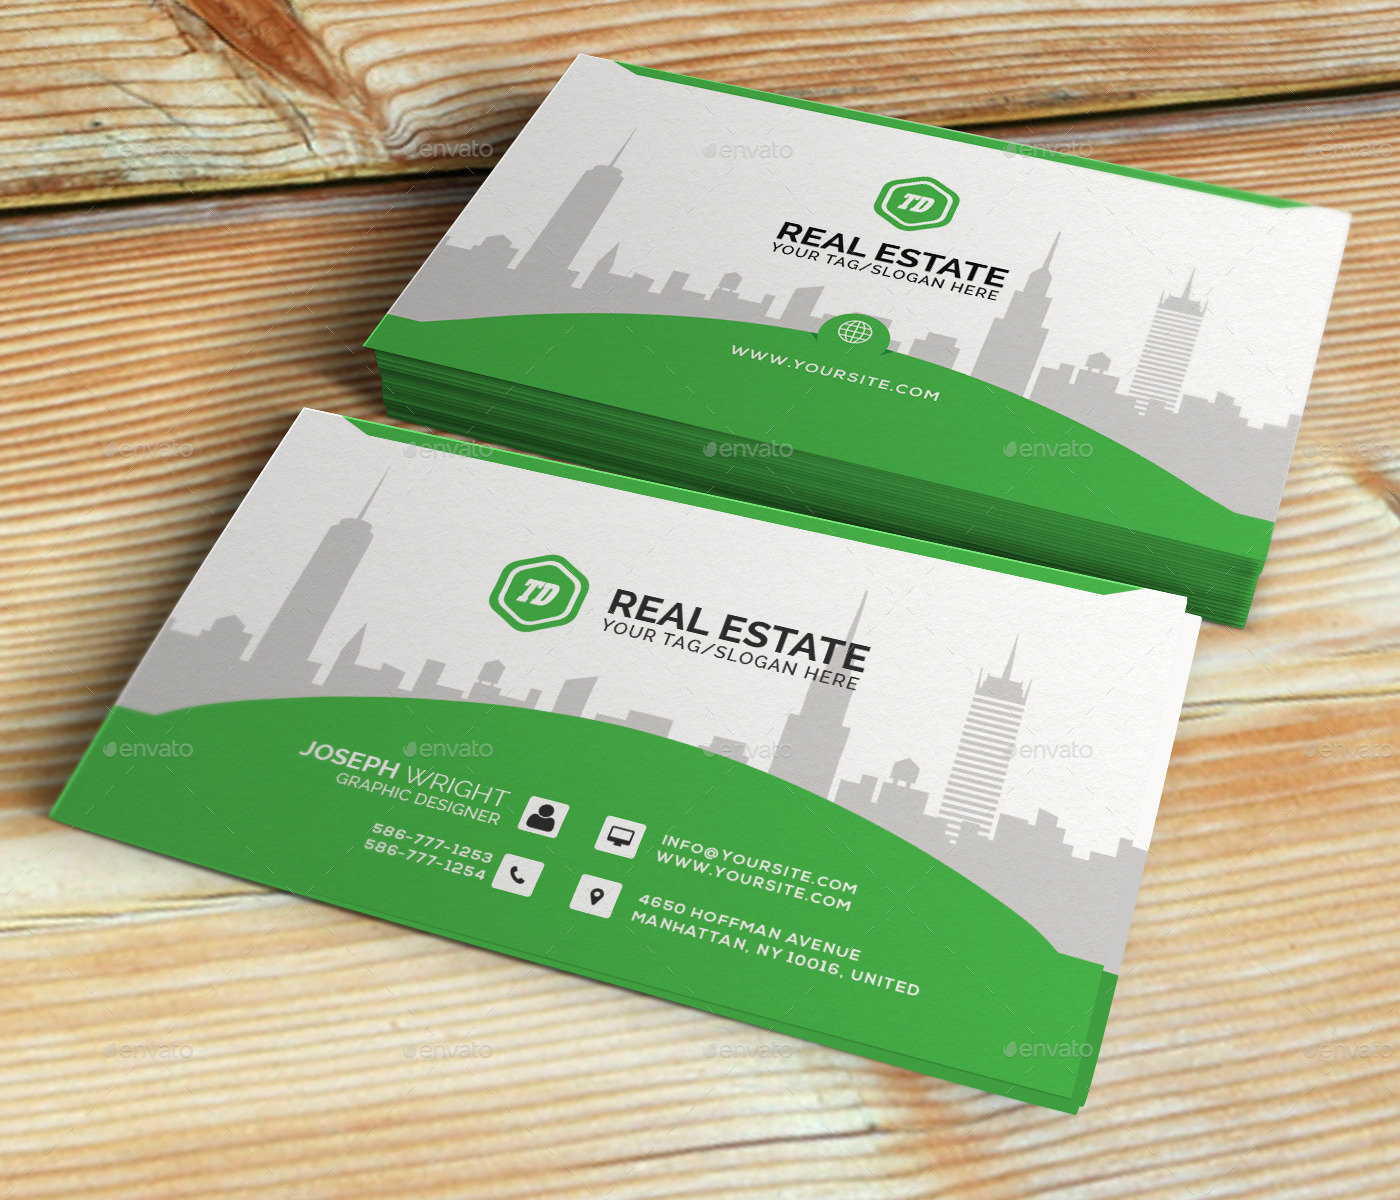 Real estate business card template by themedesk graphicriver template corporate business cards previewpreview 00g preview preview 01g previewpreview 02g friedricerecipe Gallery